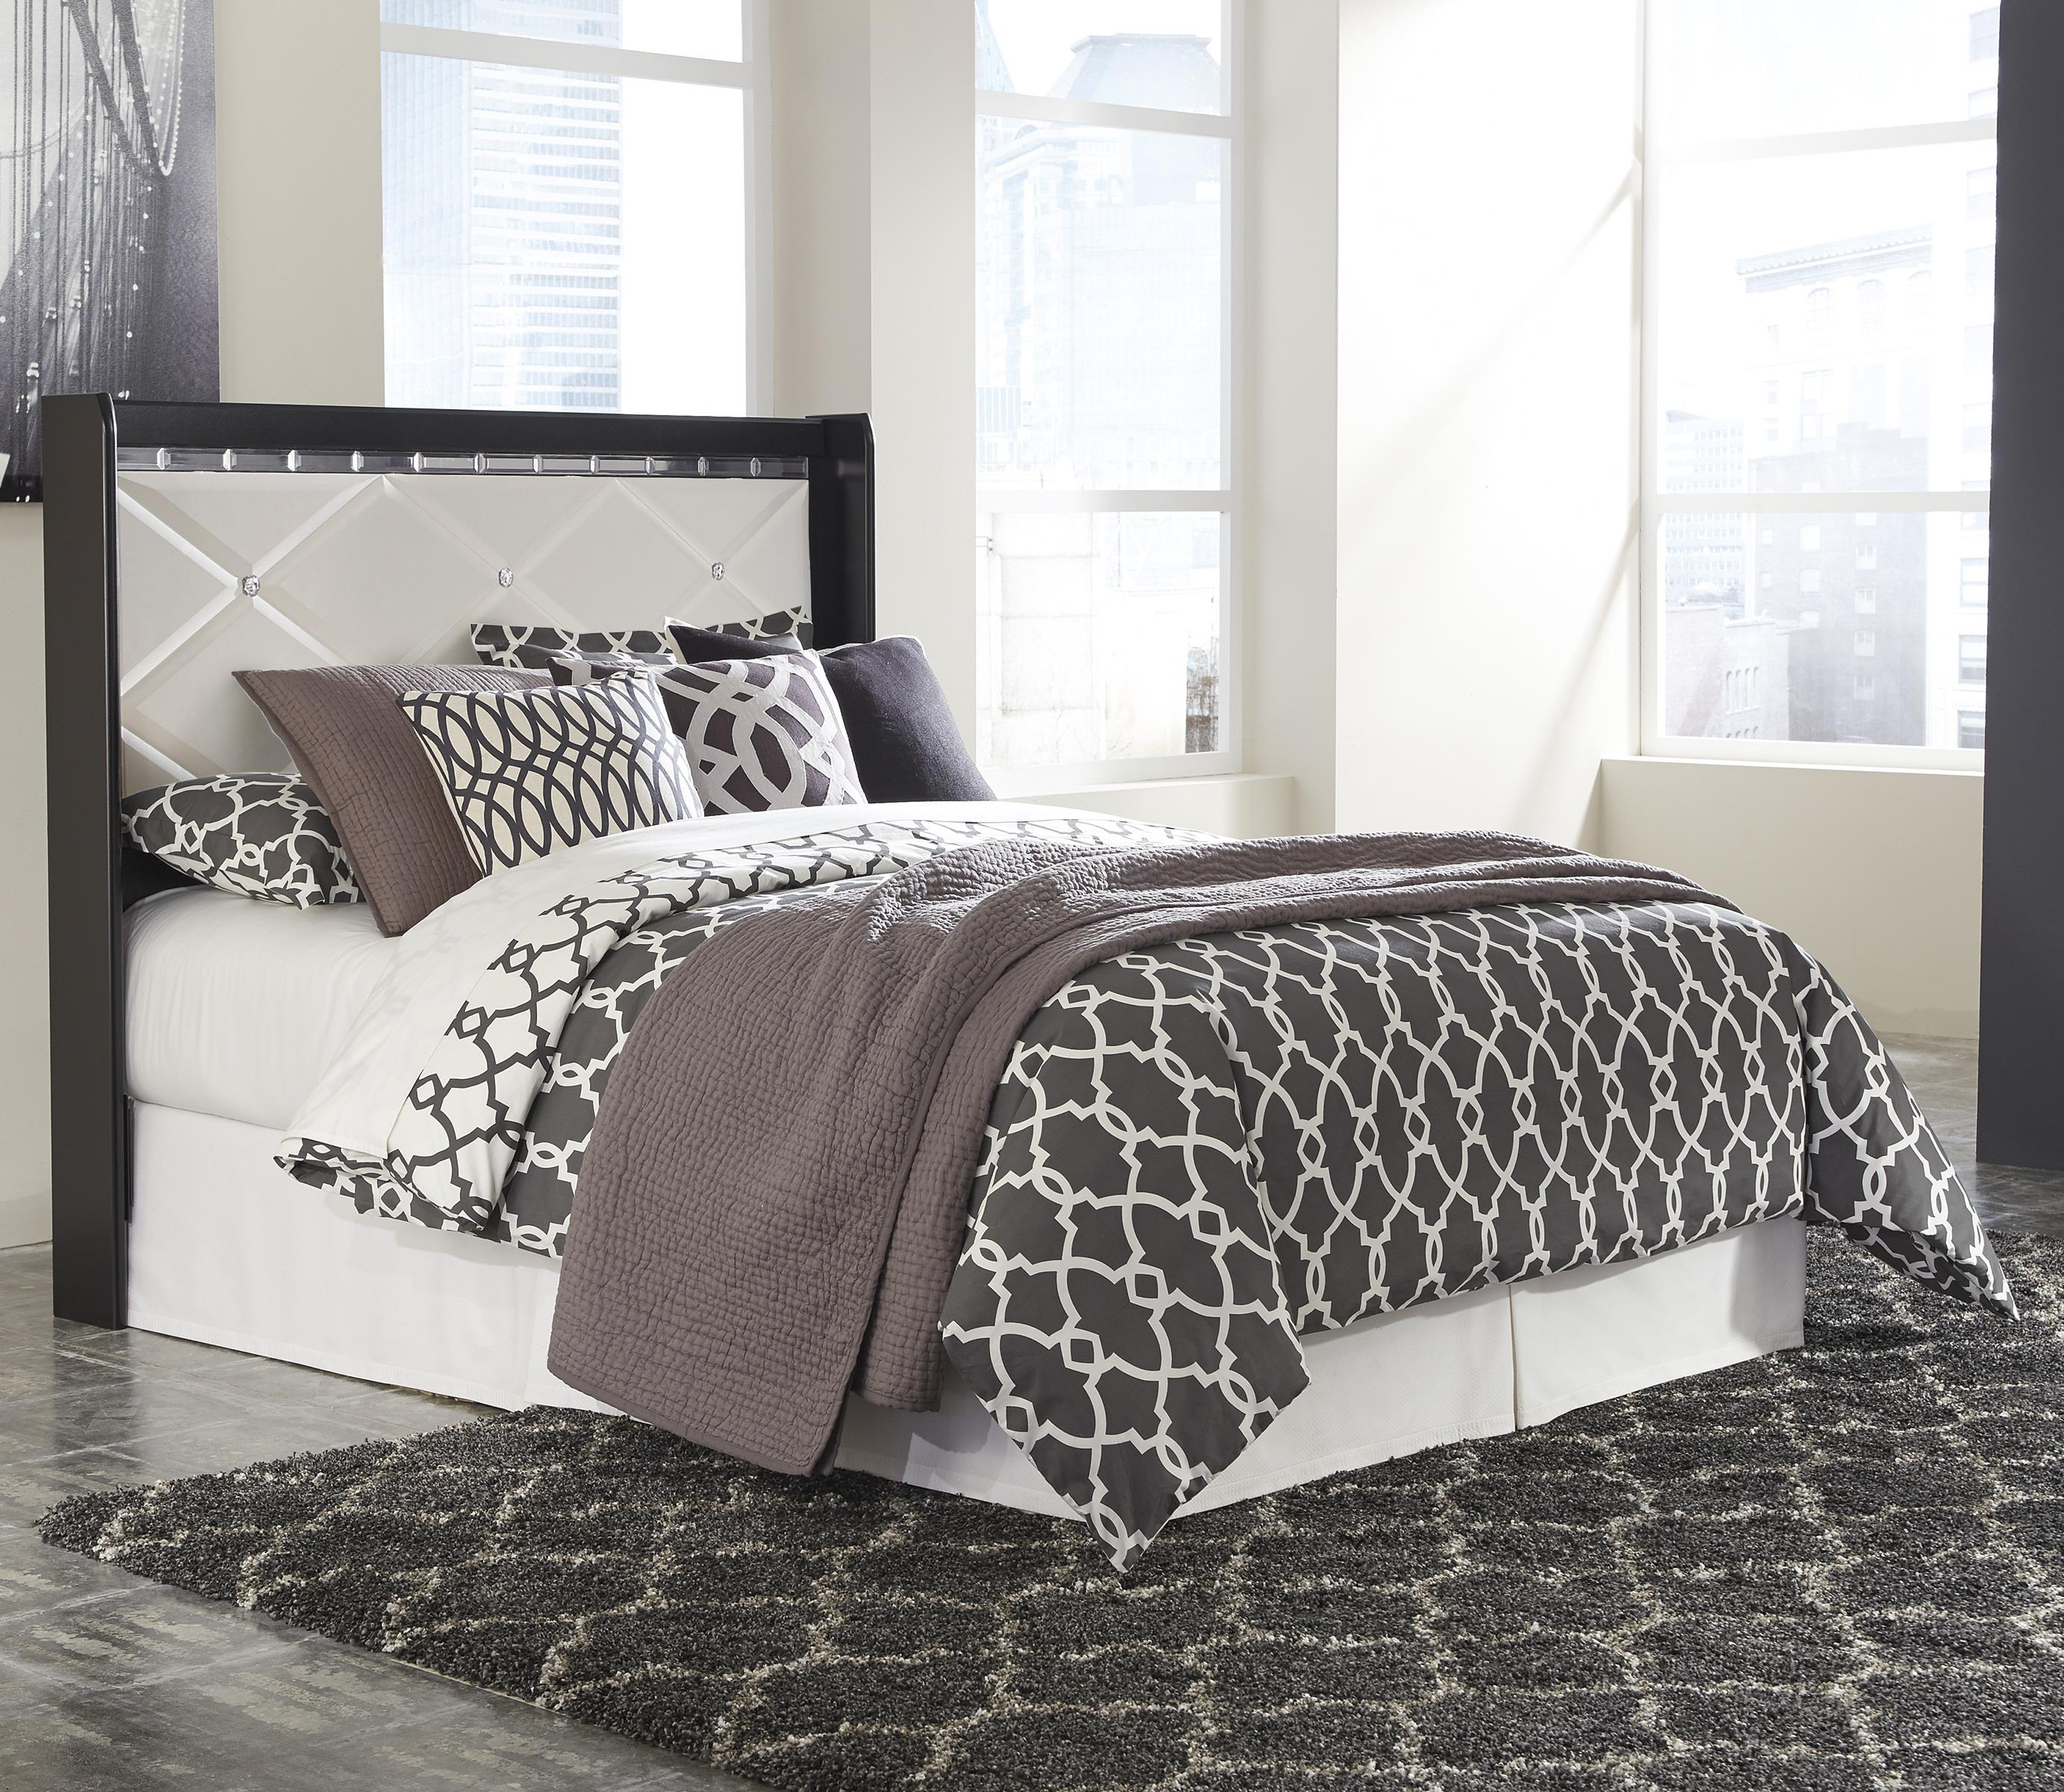 Signature design by ashley fancee queen panel headboard for Royal headboard